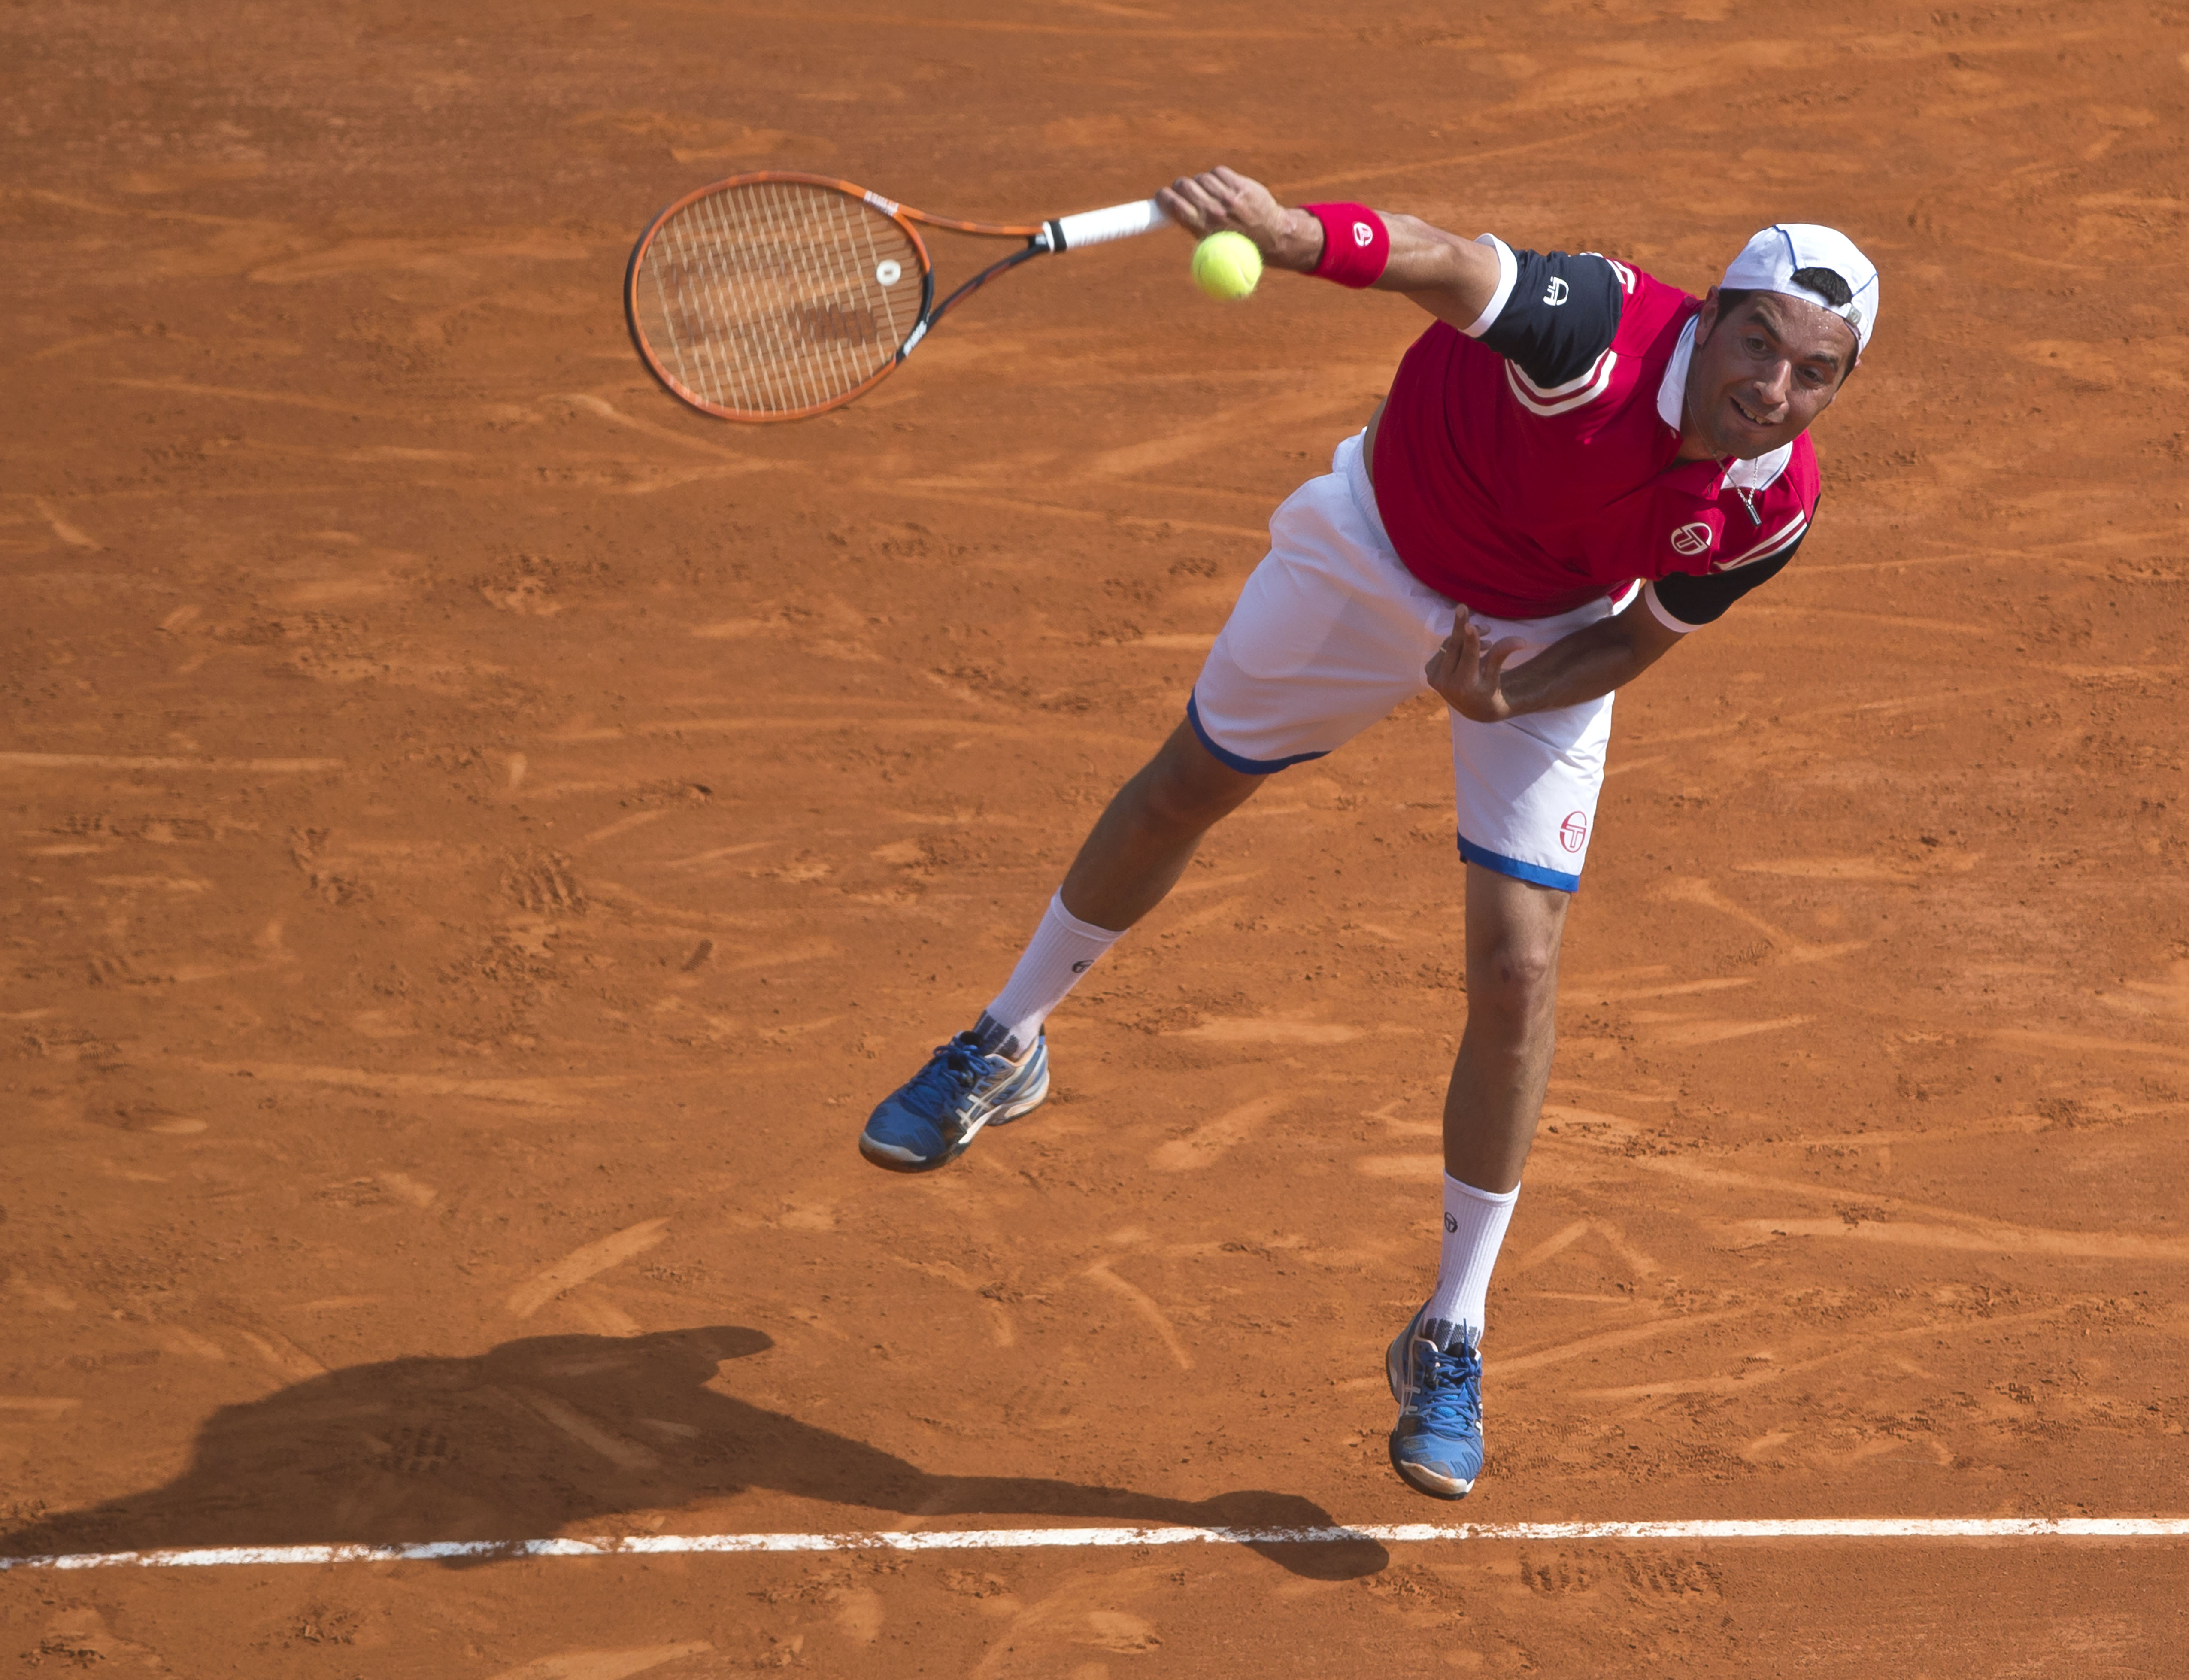 Albert Montanes of Spain serves the ball to Novak Djokovic of Serbia  during their match of the Monte Carlo Tennis Masters tournament in Monaco, Tuesday, April 15, 2014. (AP Photo/Michel Euler)